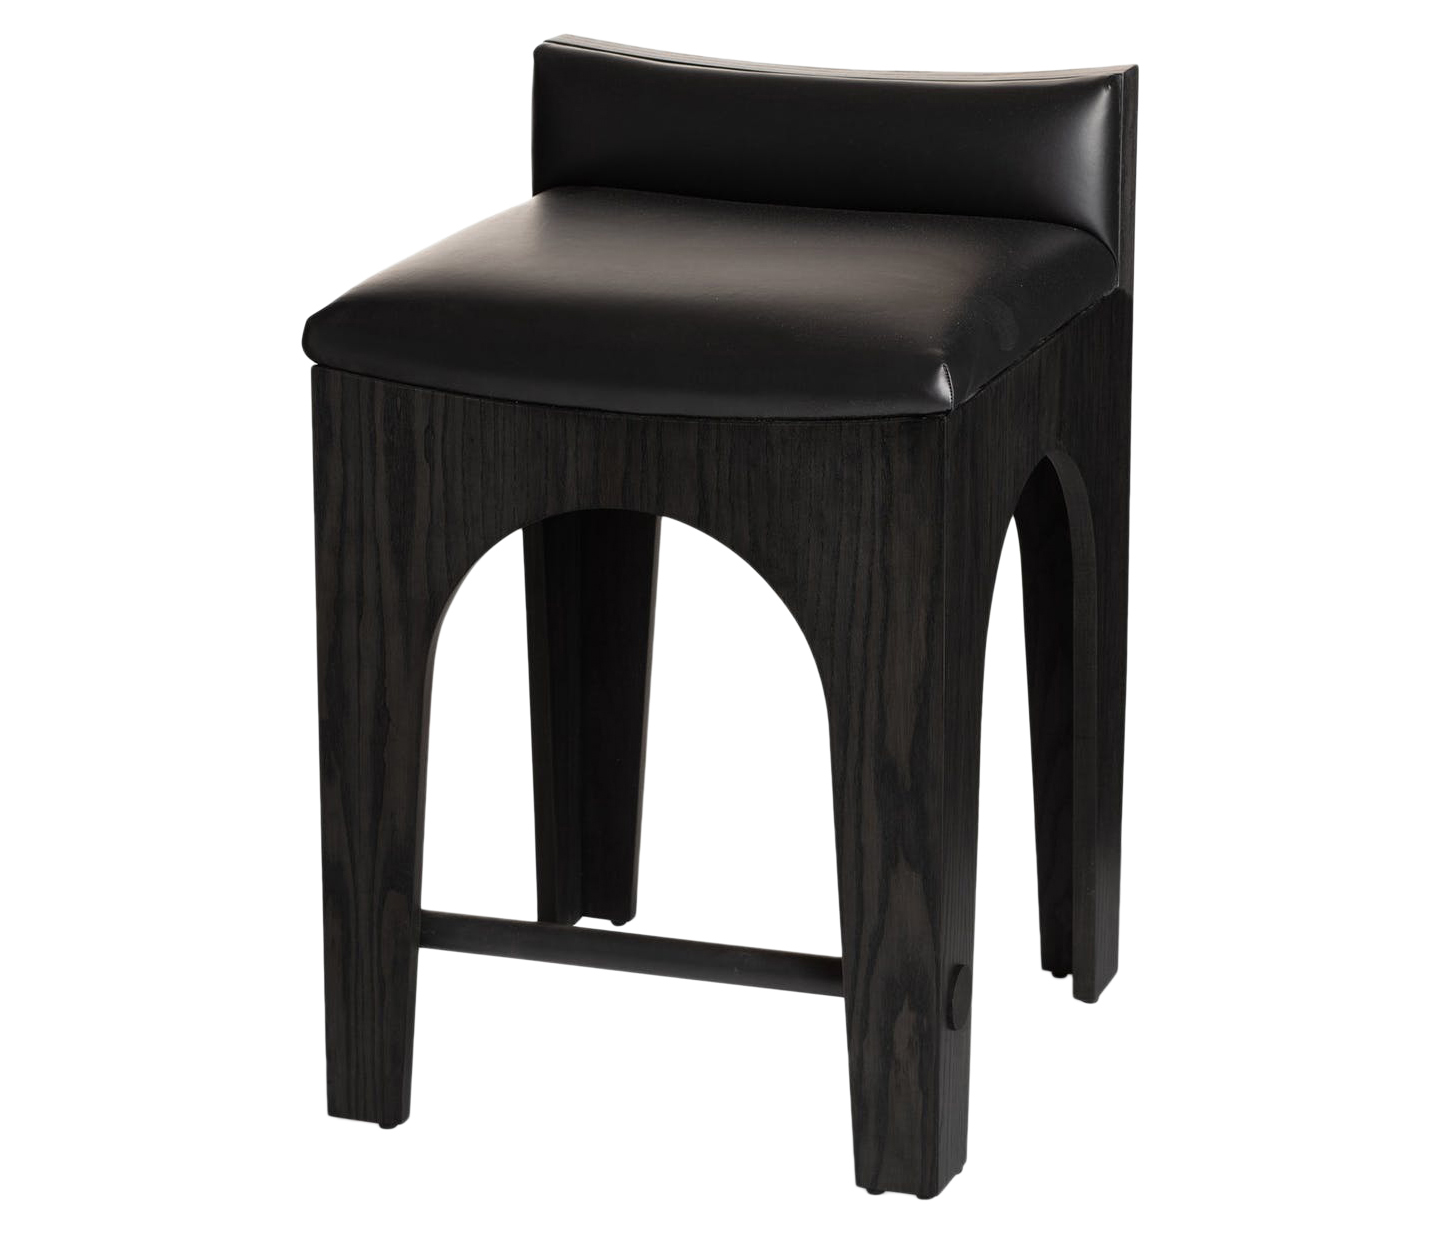 Brandon Arched Counter Stool. Available indining height, counter height, and bar height. Shown inBRADLEYElements Black Forever Leather, Ebony on Ash base, and Satin Black powder-coated stretcher. Available in COM/COL (1 yd solid / 25 sf). Customize with any BRADLEY wood finish for the stool and any BRADLEY iron finish for the stretcher. Lead time:8-10 weeks.